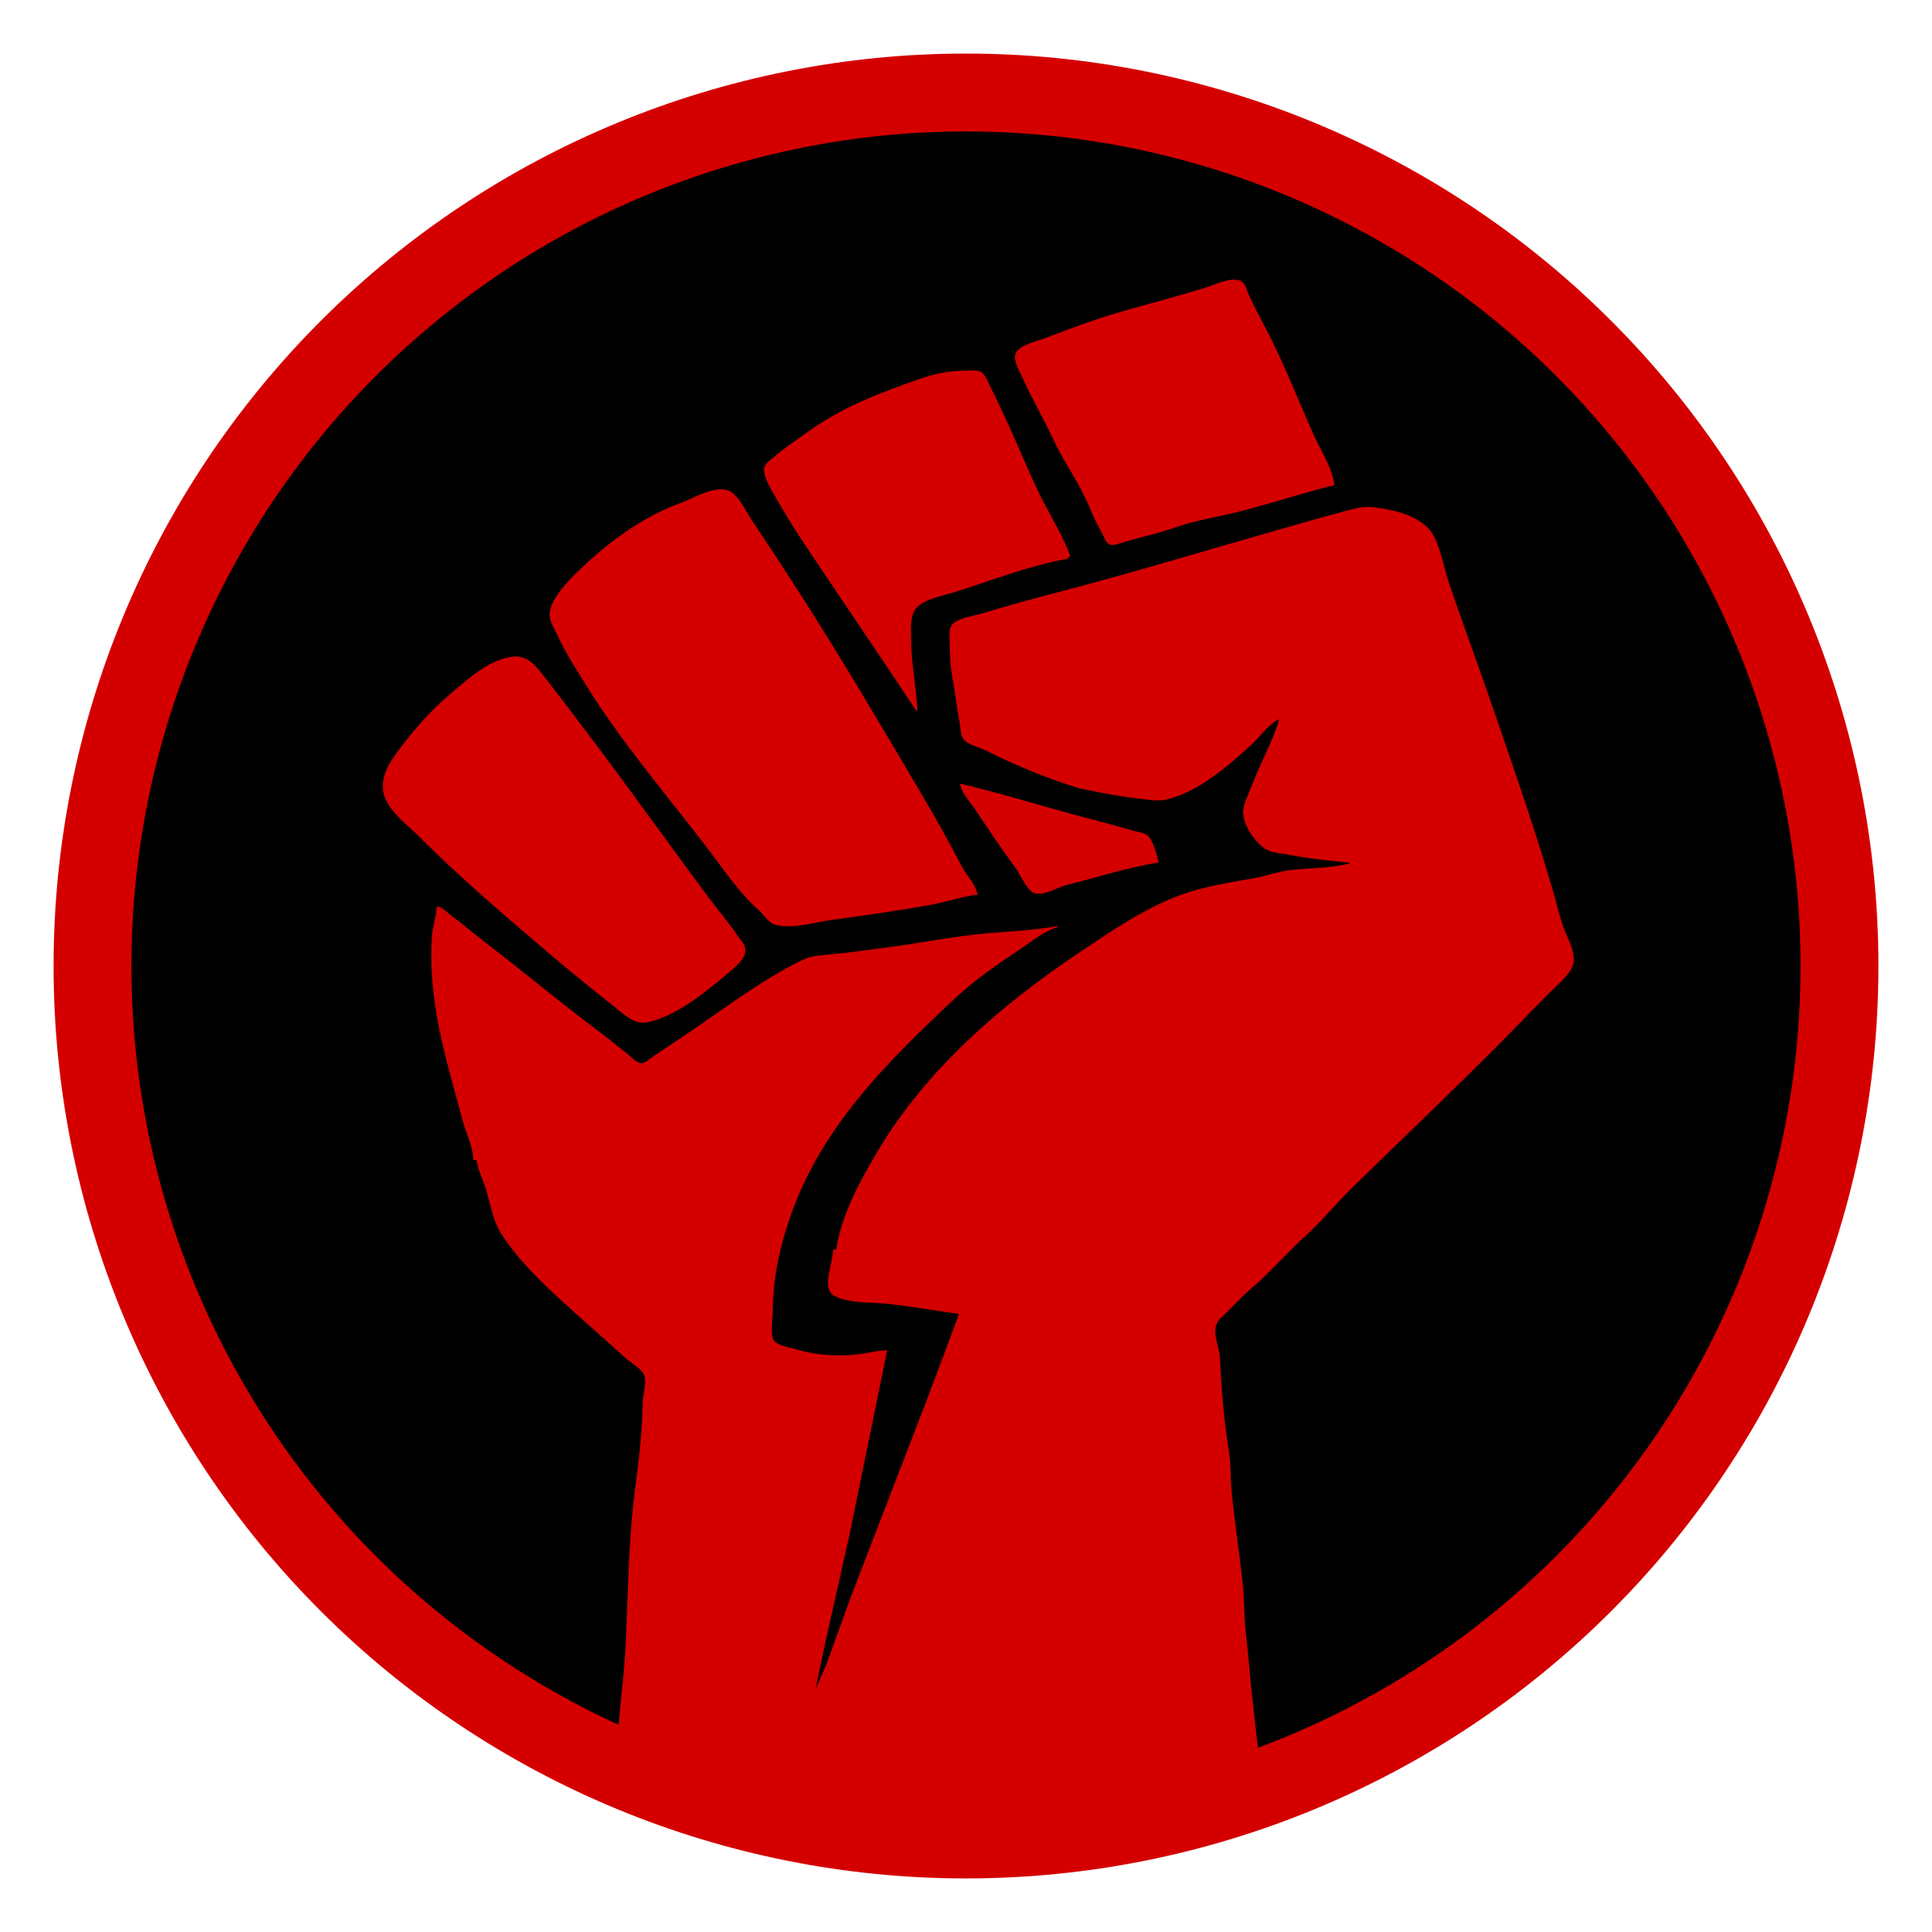 Fist clipart red. Power big image png